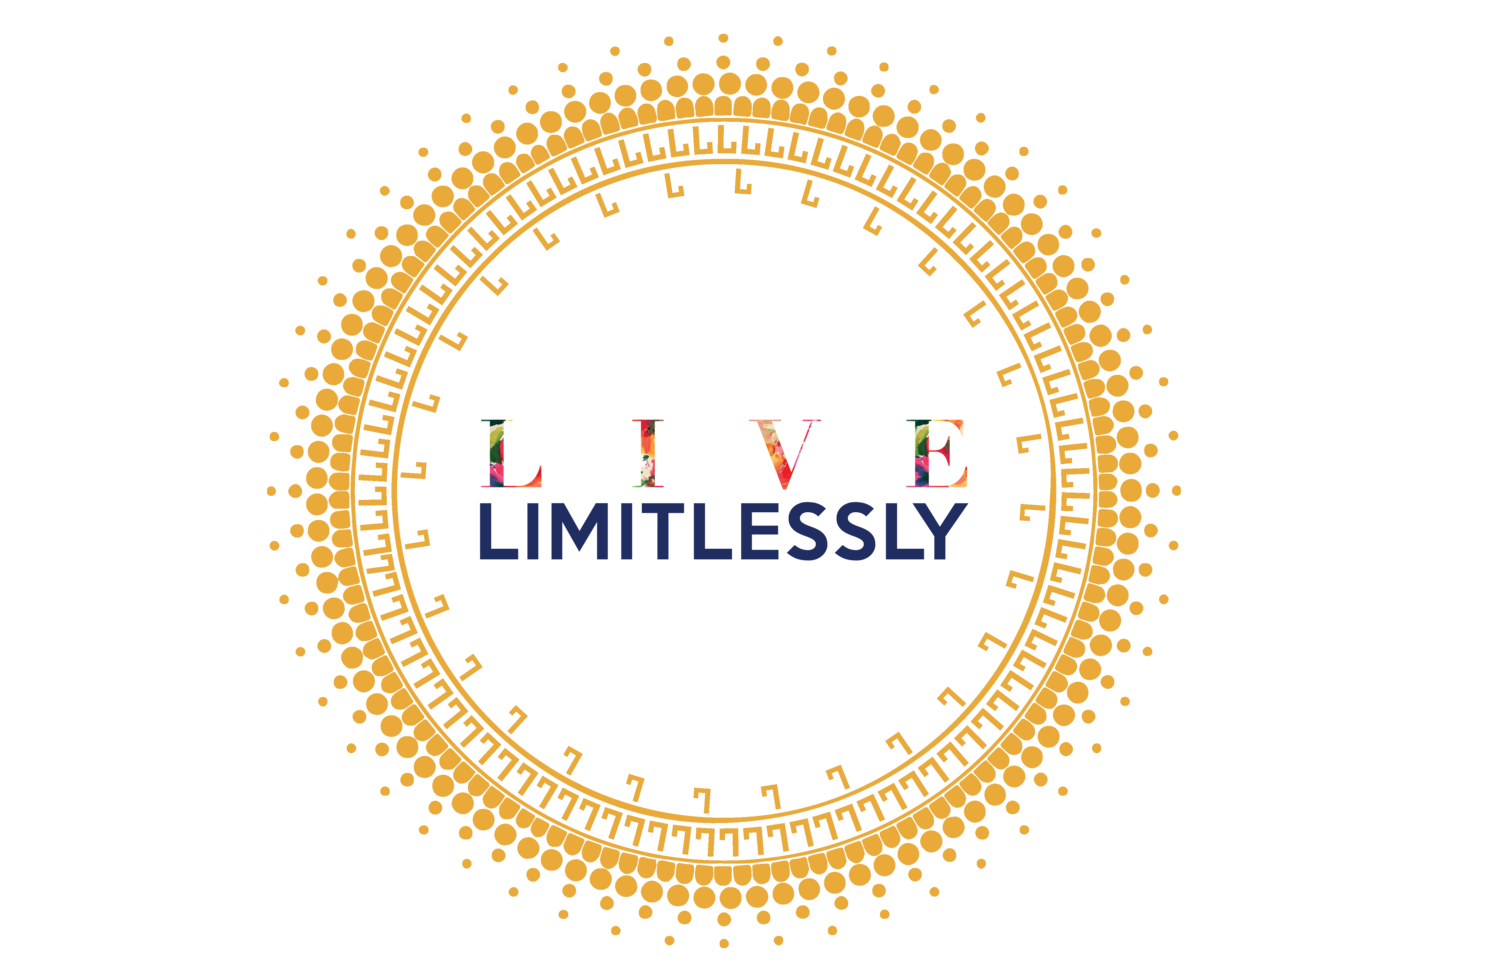 Live Limitlessly